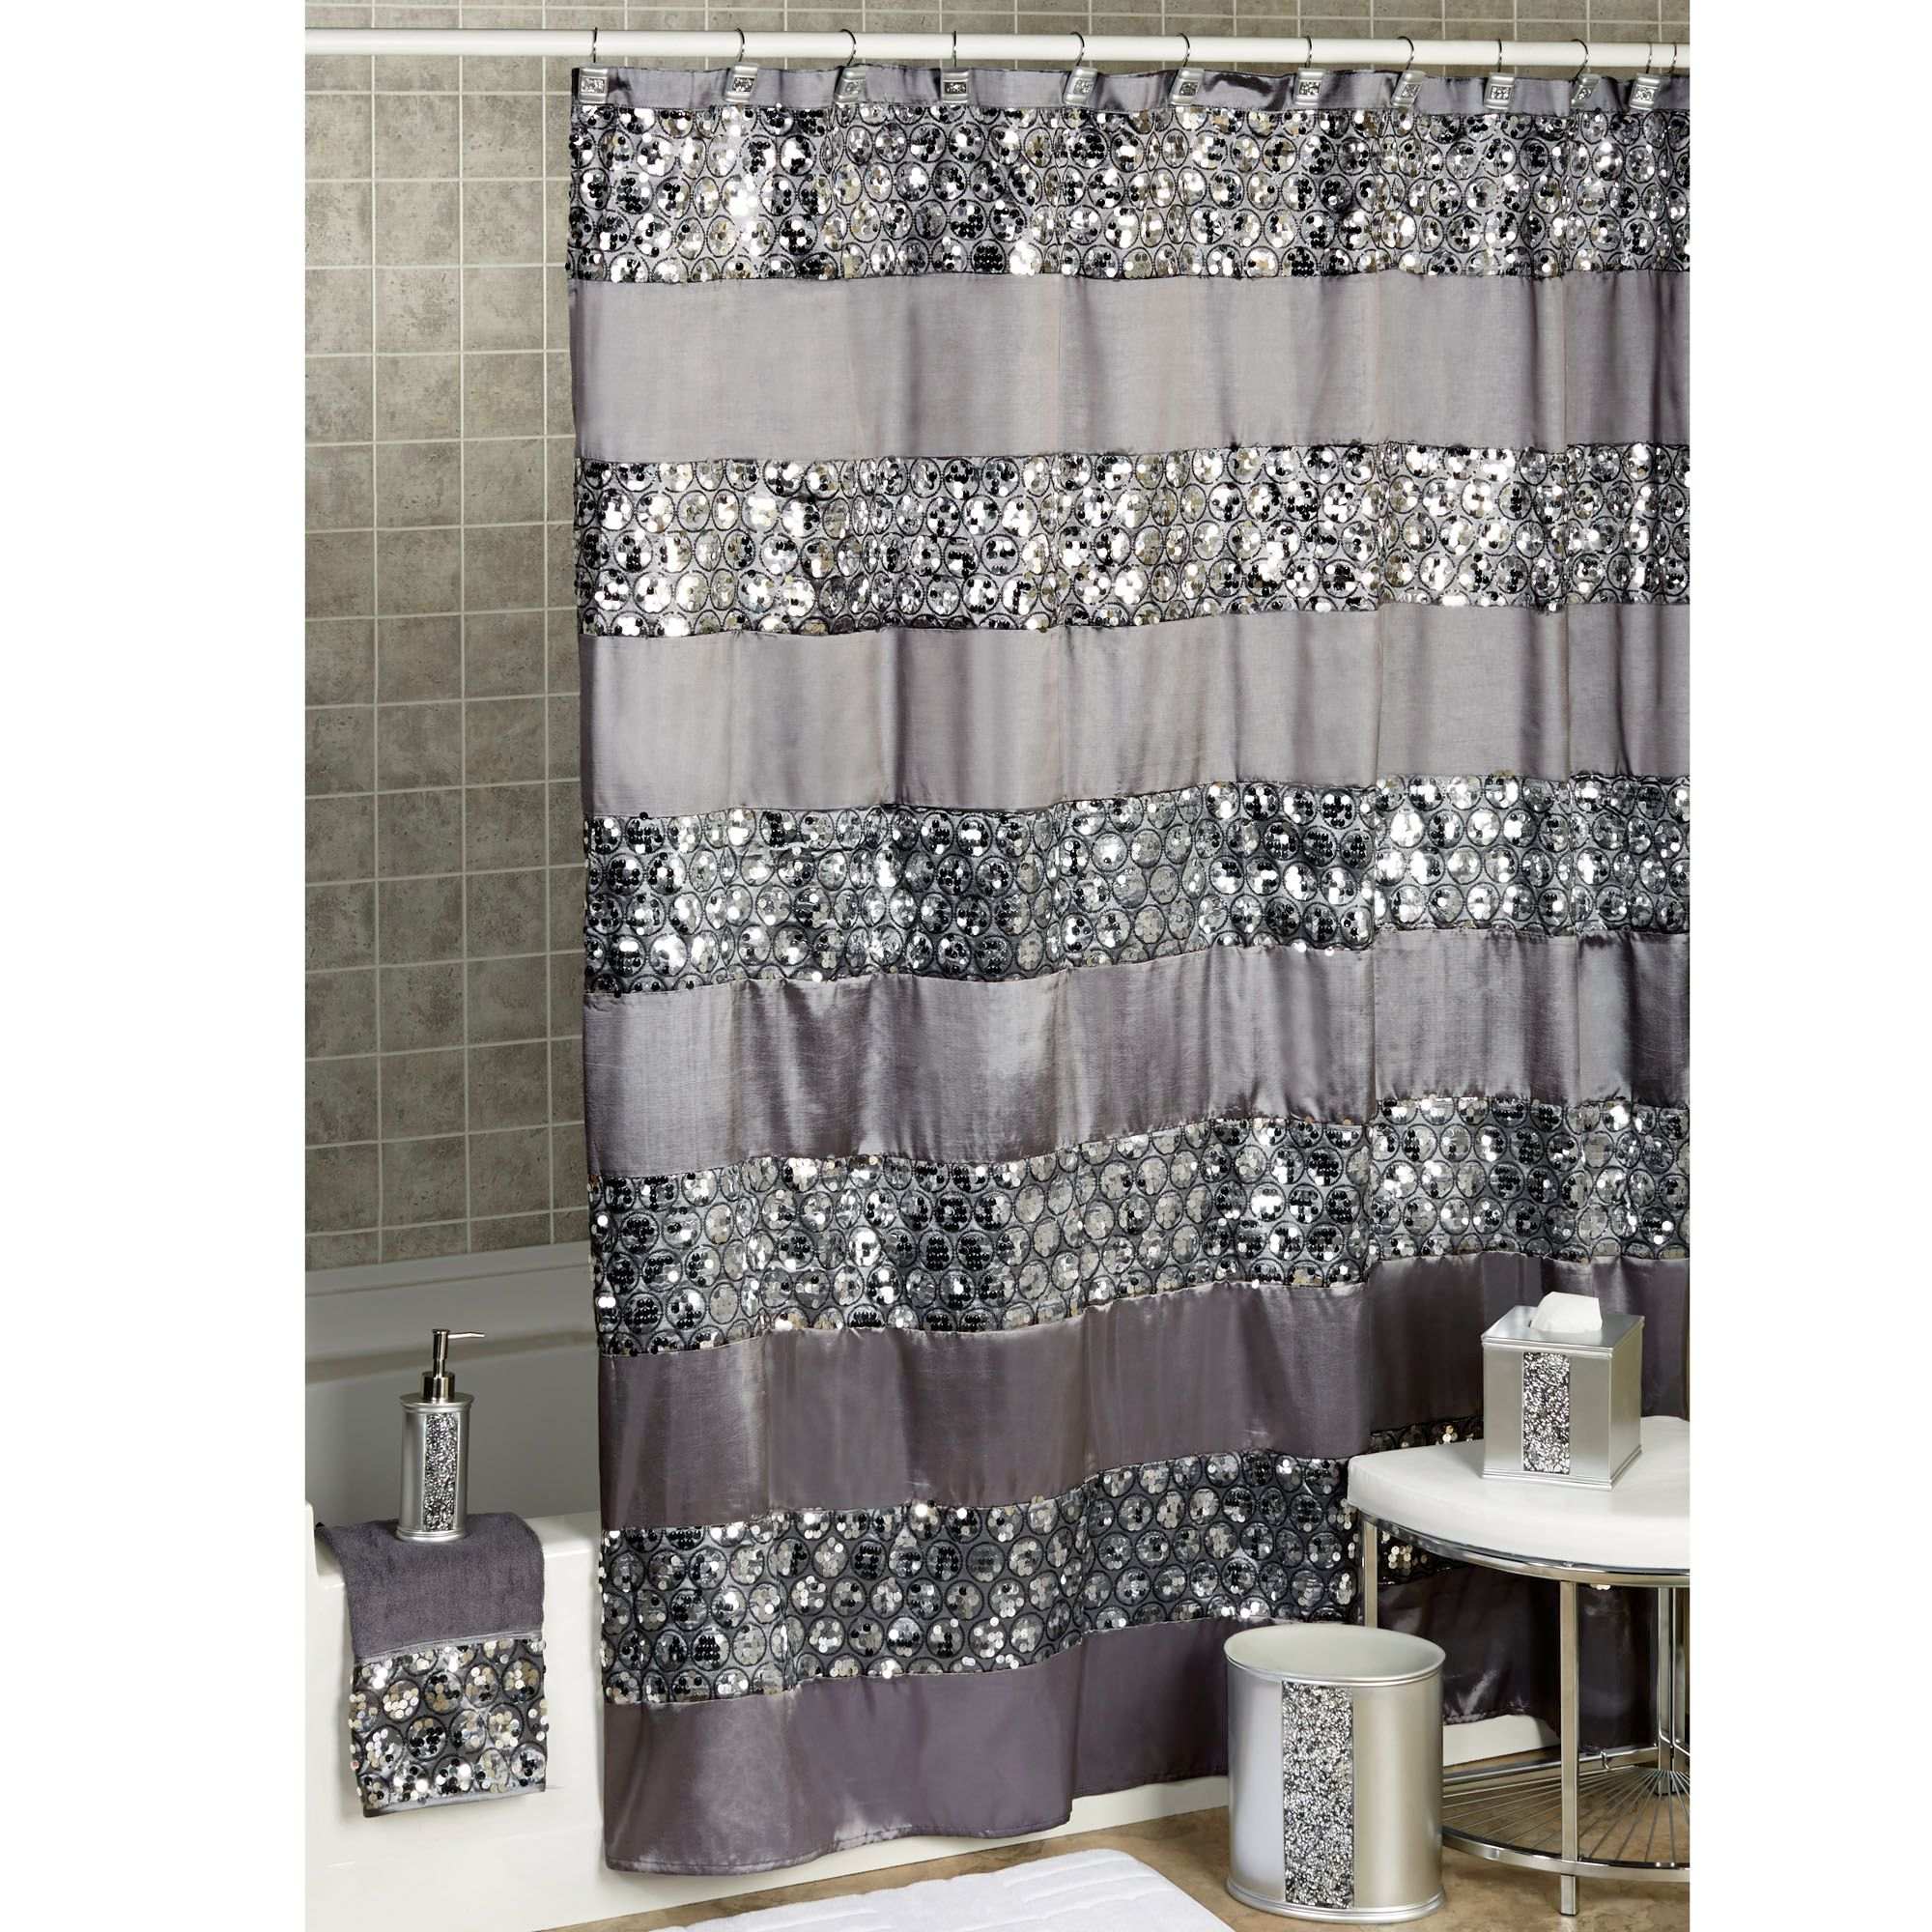 breathtaking best design bloomingdales image curtainsbest full size to curtains place quality of shower buyower buy inpa